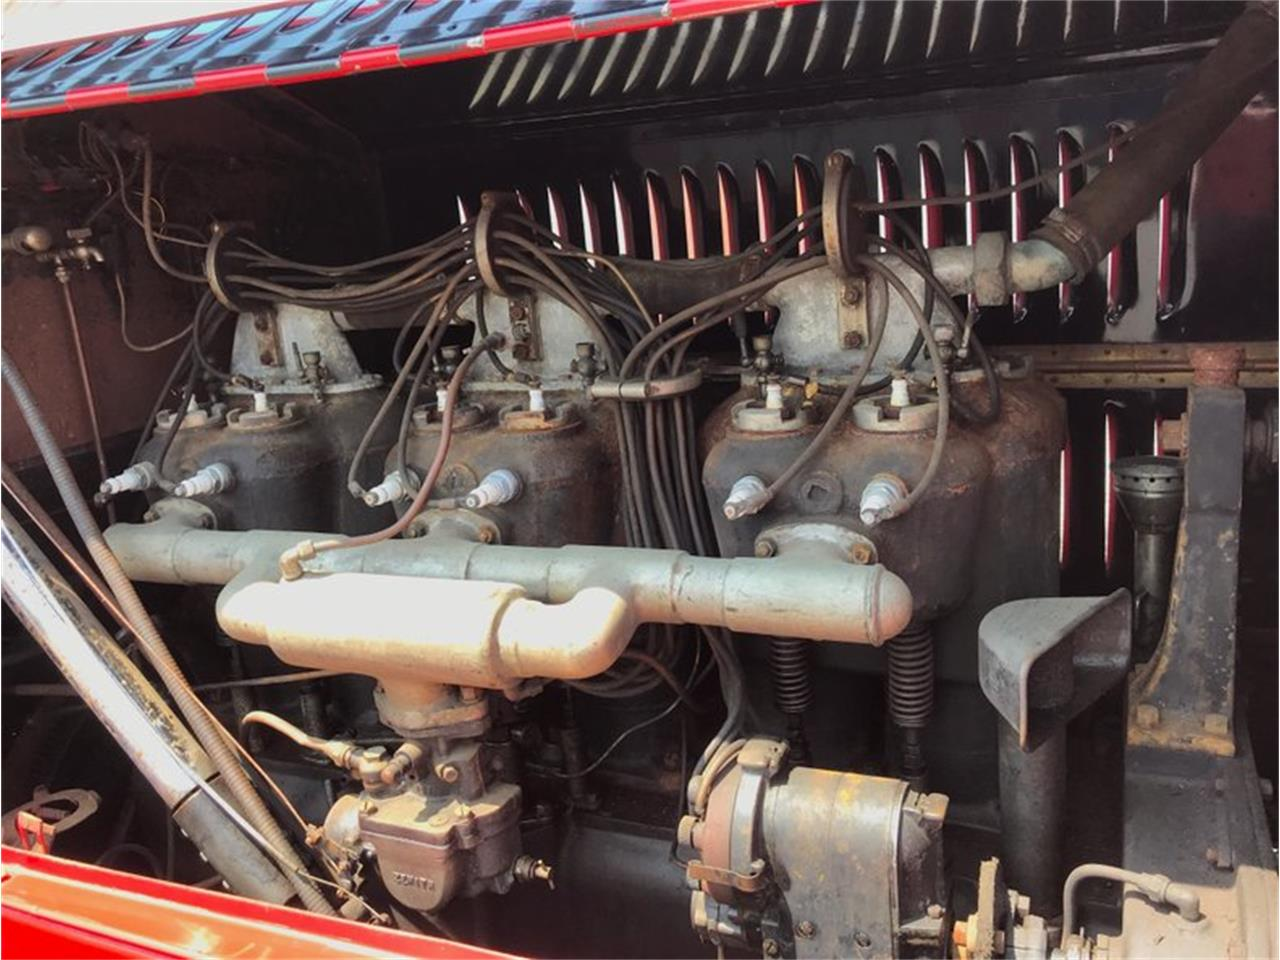 1920 Ahrens-Fox Fire Truck for sale in Morgantown, PA – photo 25